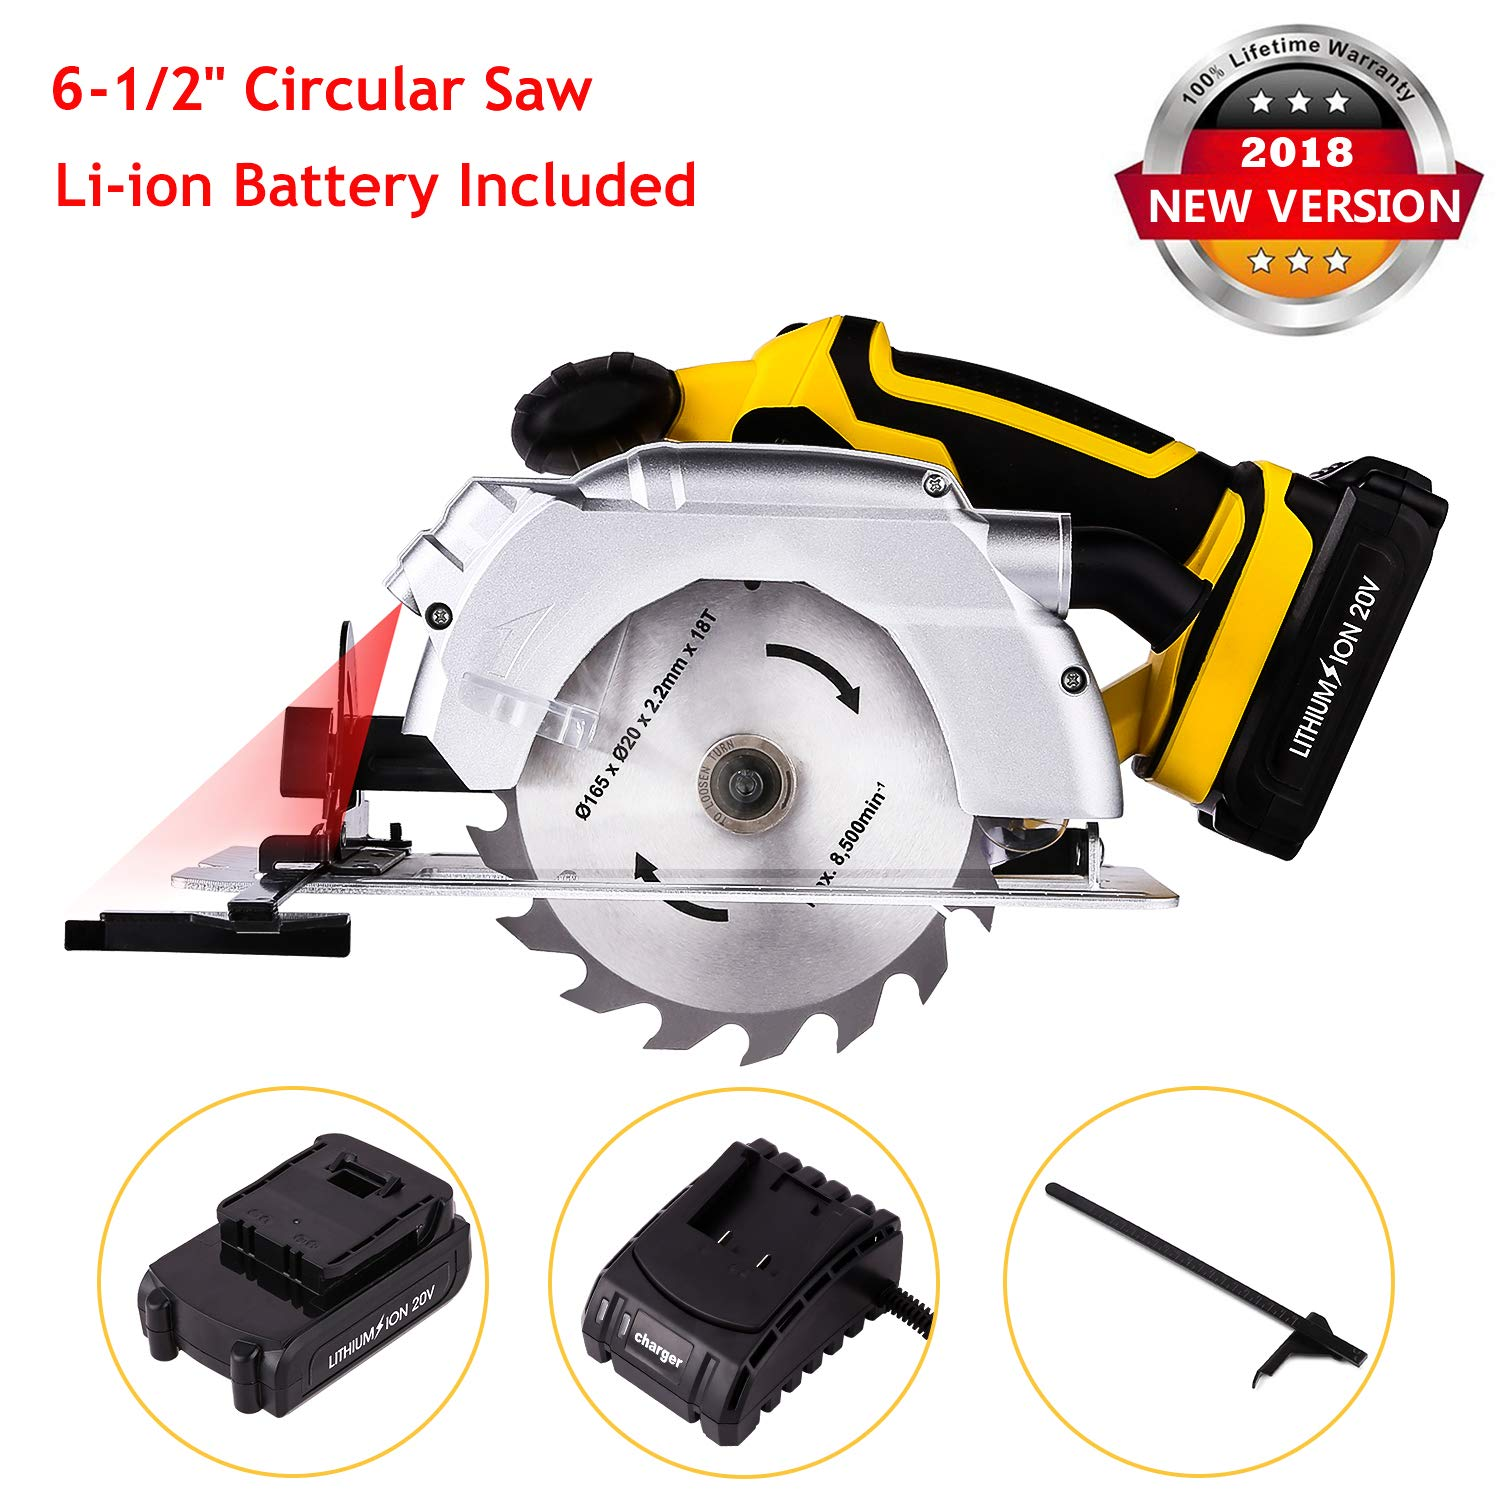 Rendio 20V Portable Circular Saw, Cordless, 7000 RPM 6-1/2'' Saw Blade with Lightweight Safety Guard, Laser Guide and Guide Ruler, Li-ion Battery and Charger Adapter Included